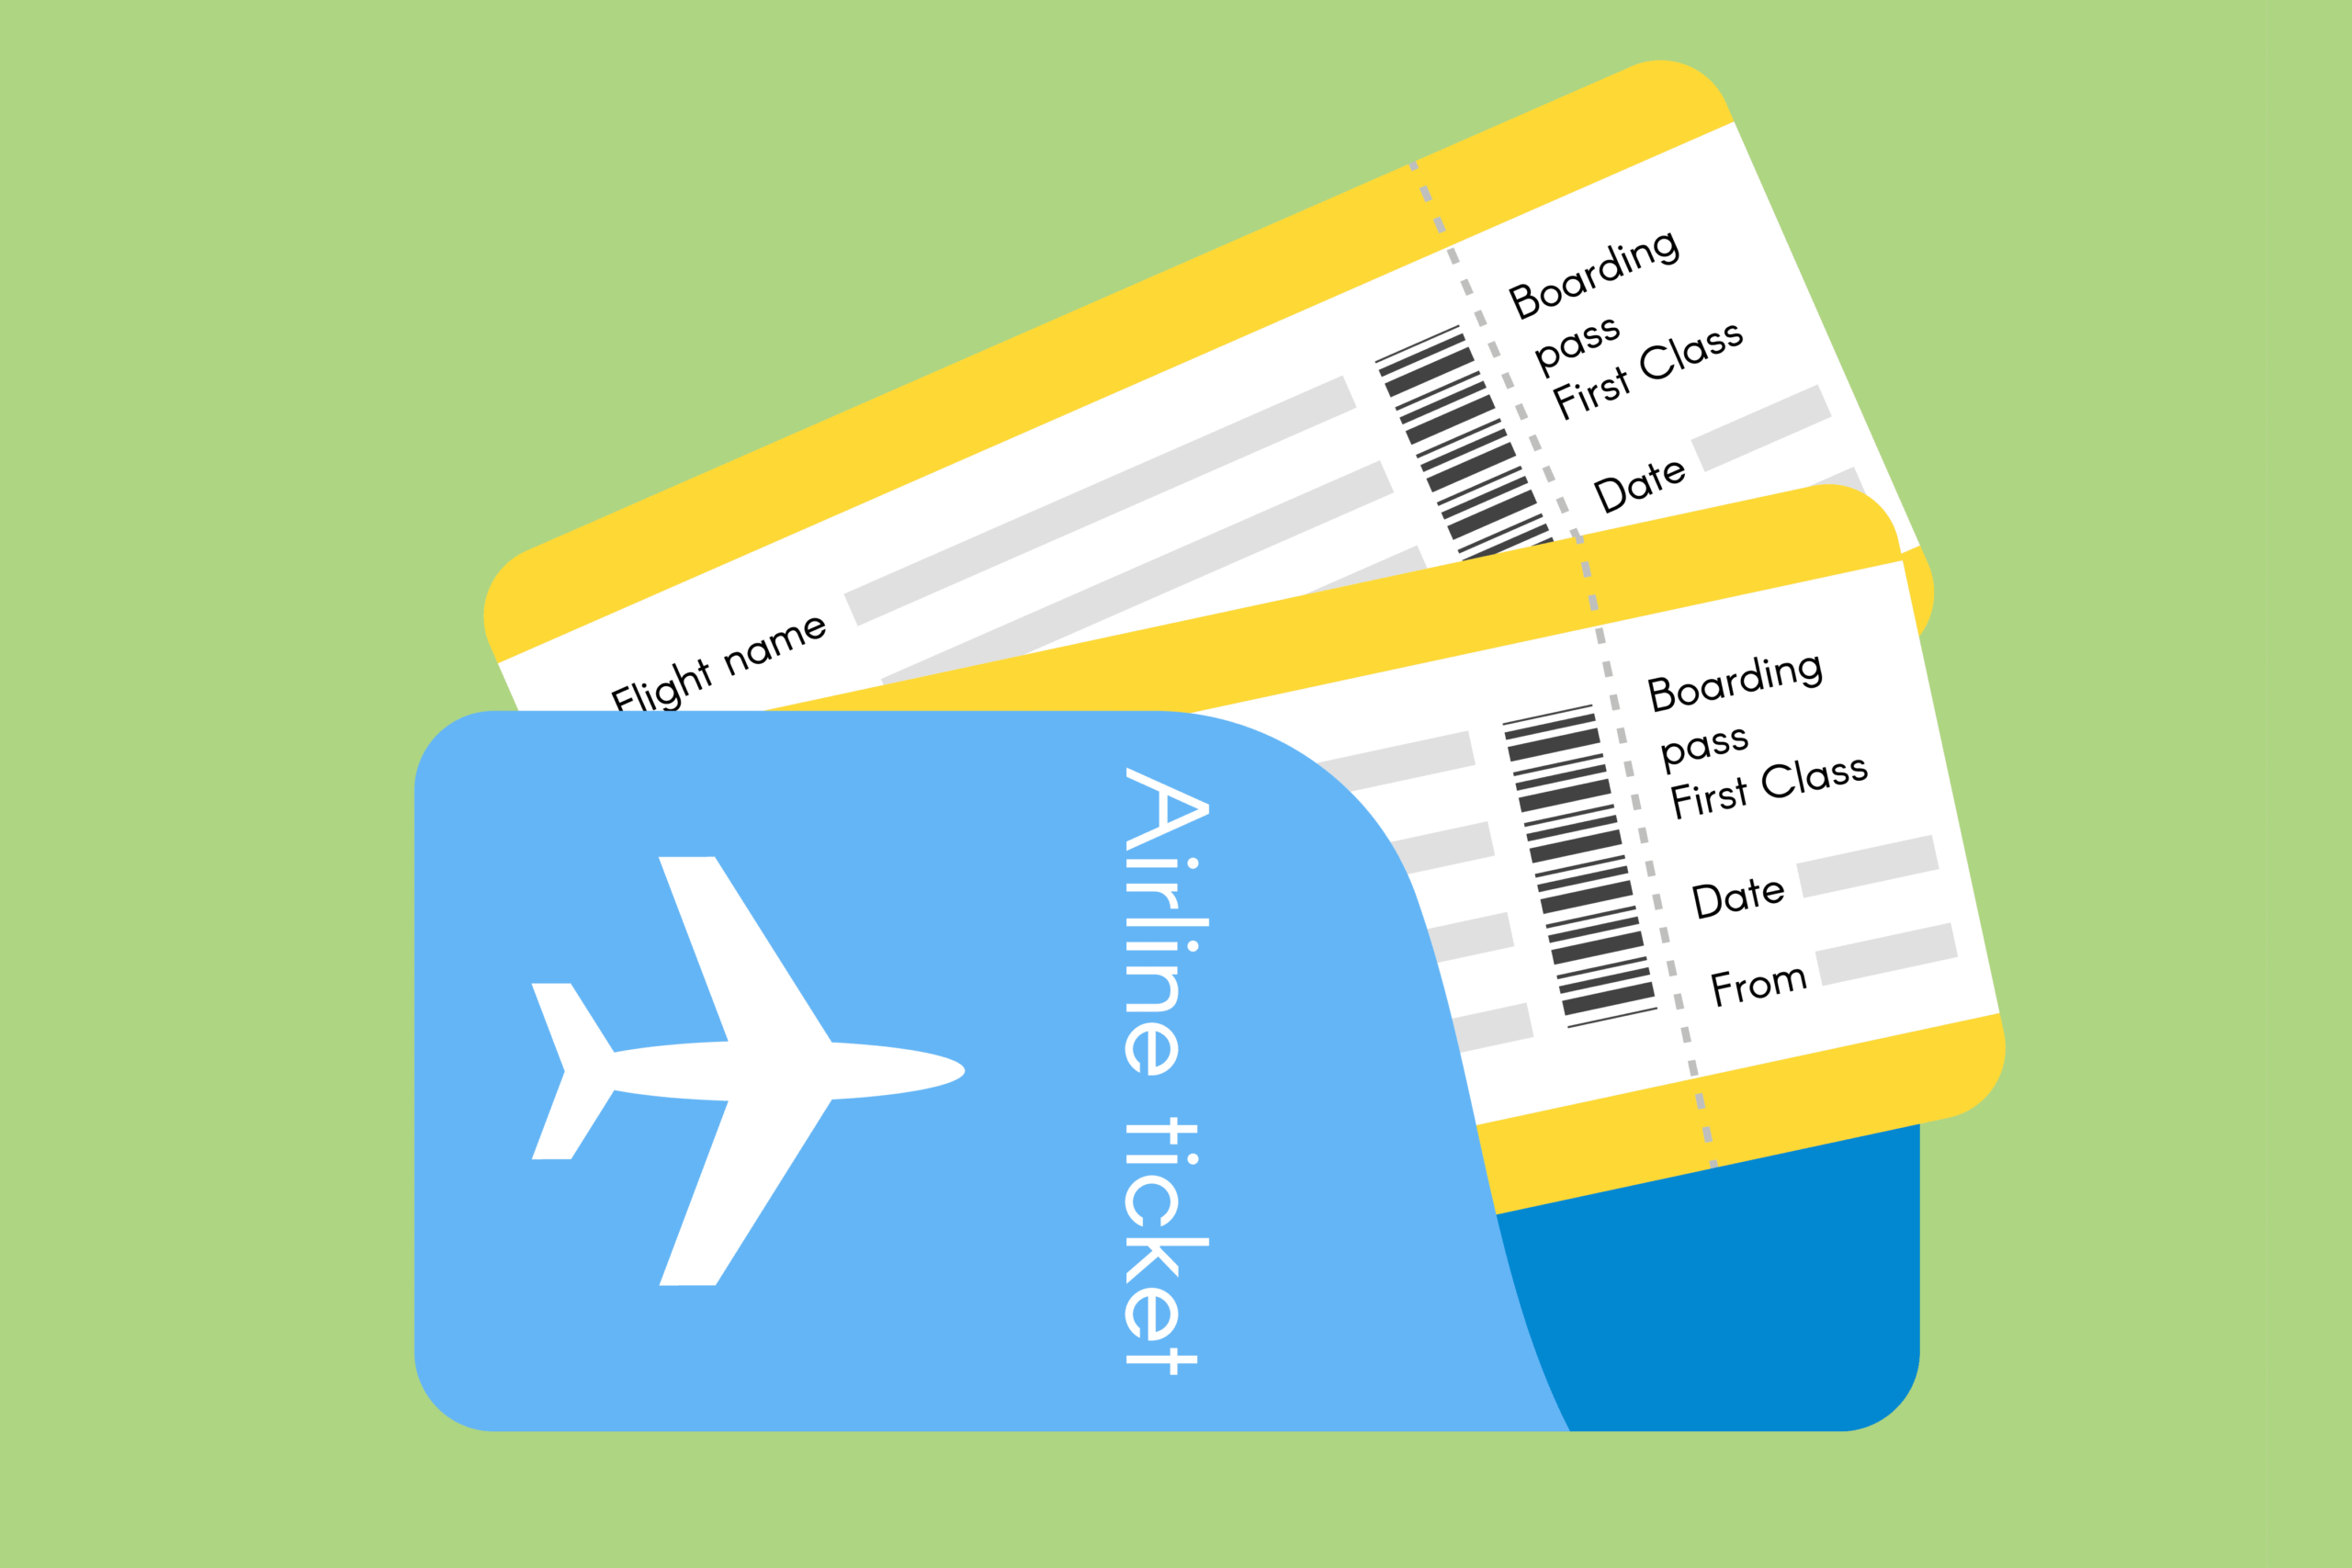 US travel agency air ticket sales still in the red